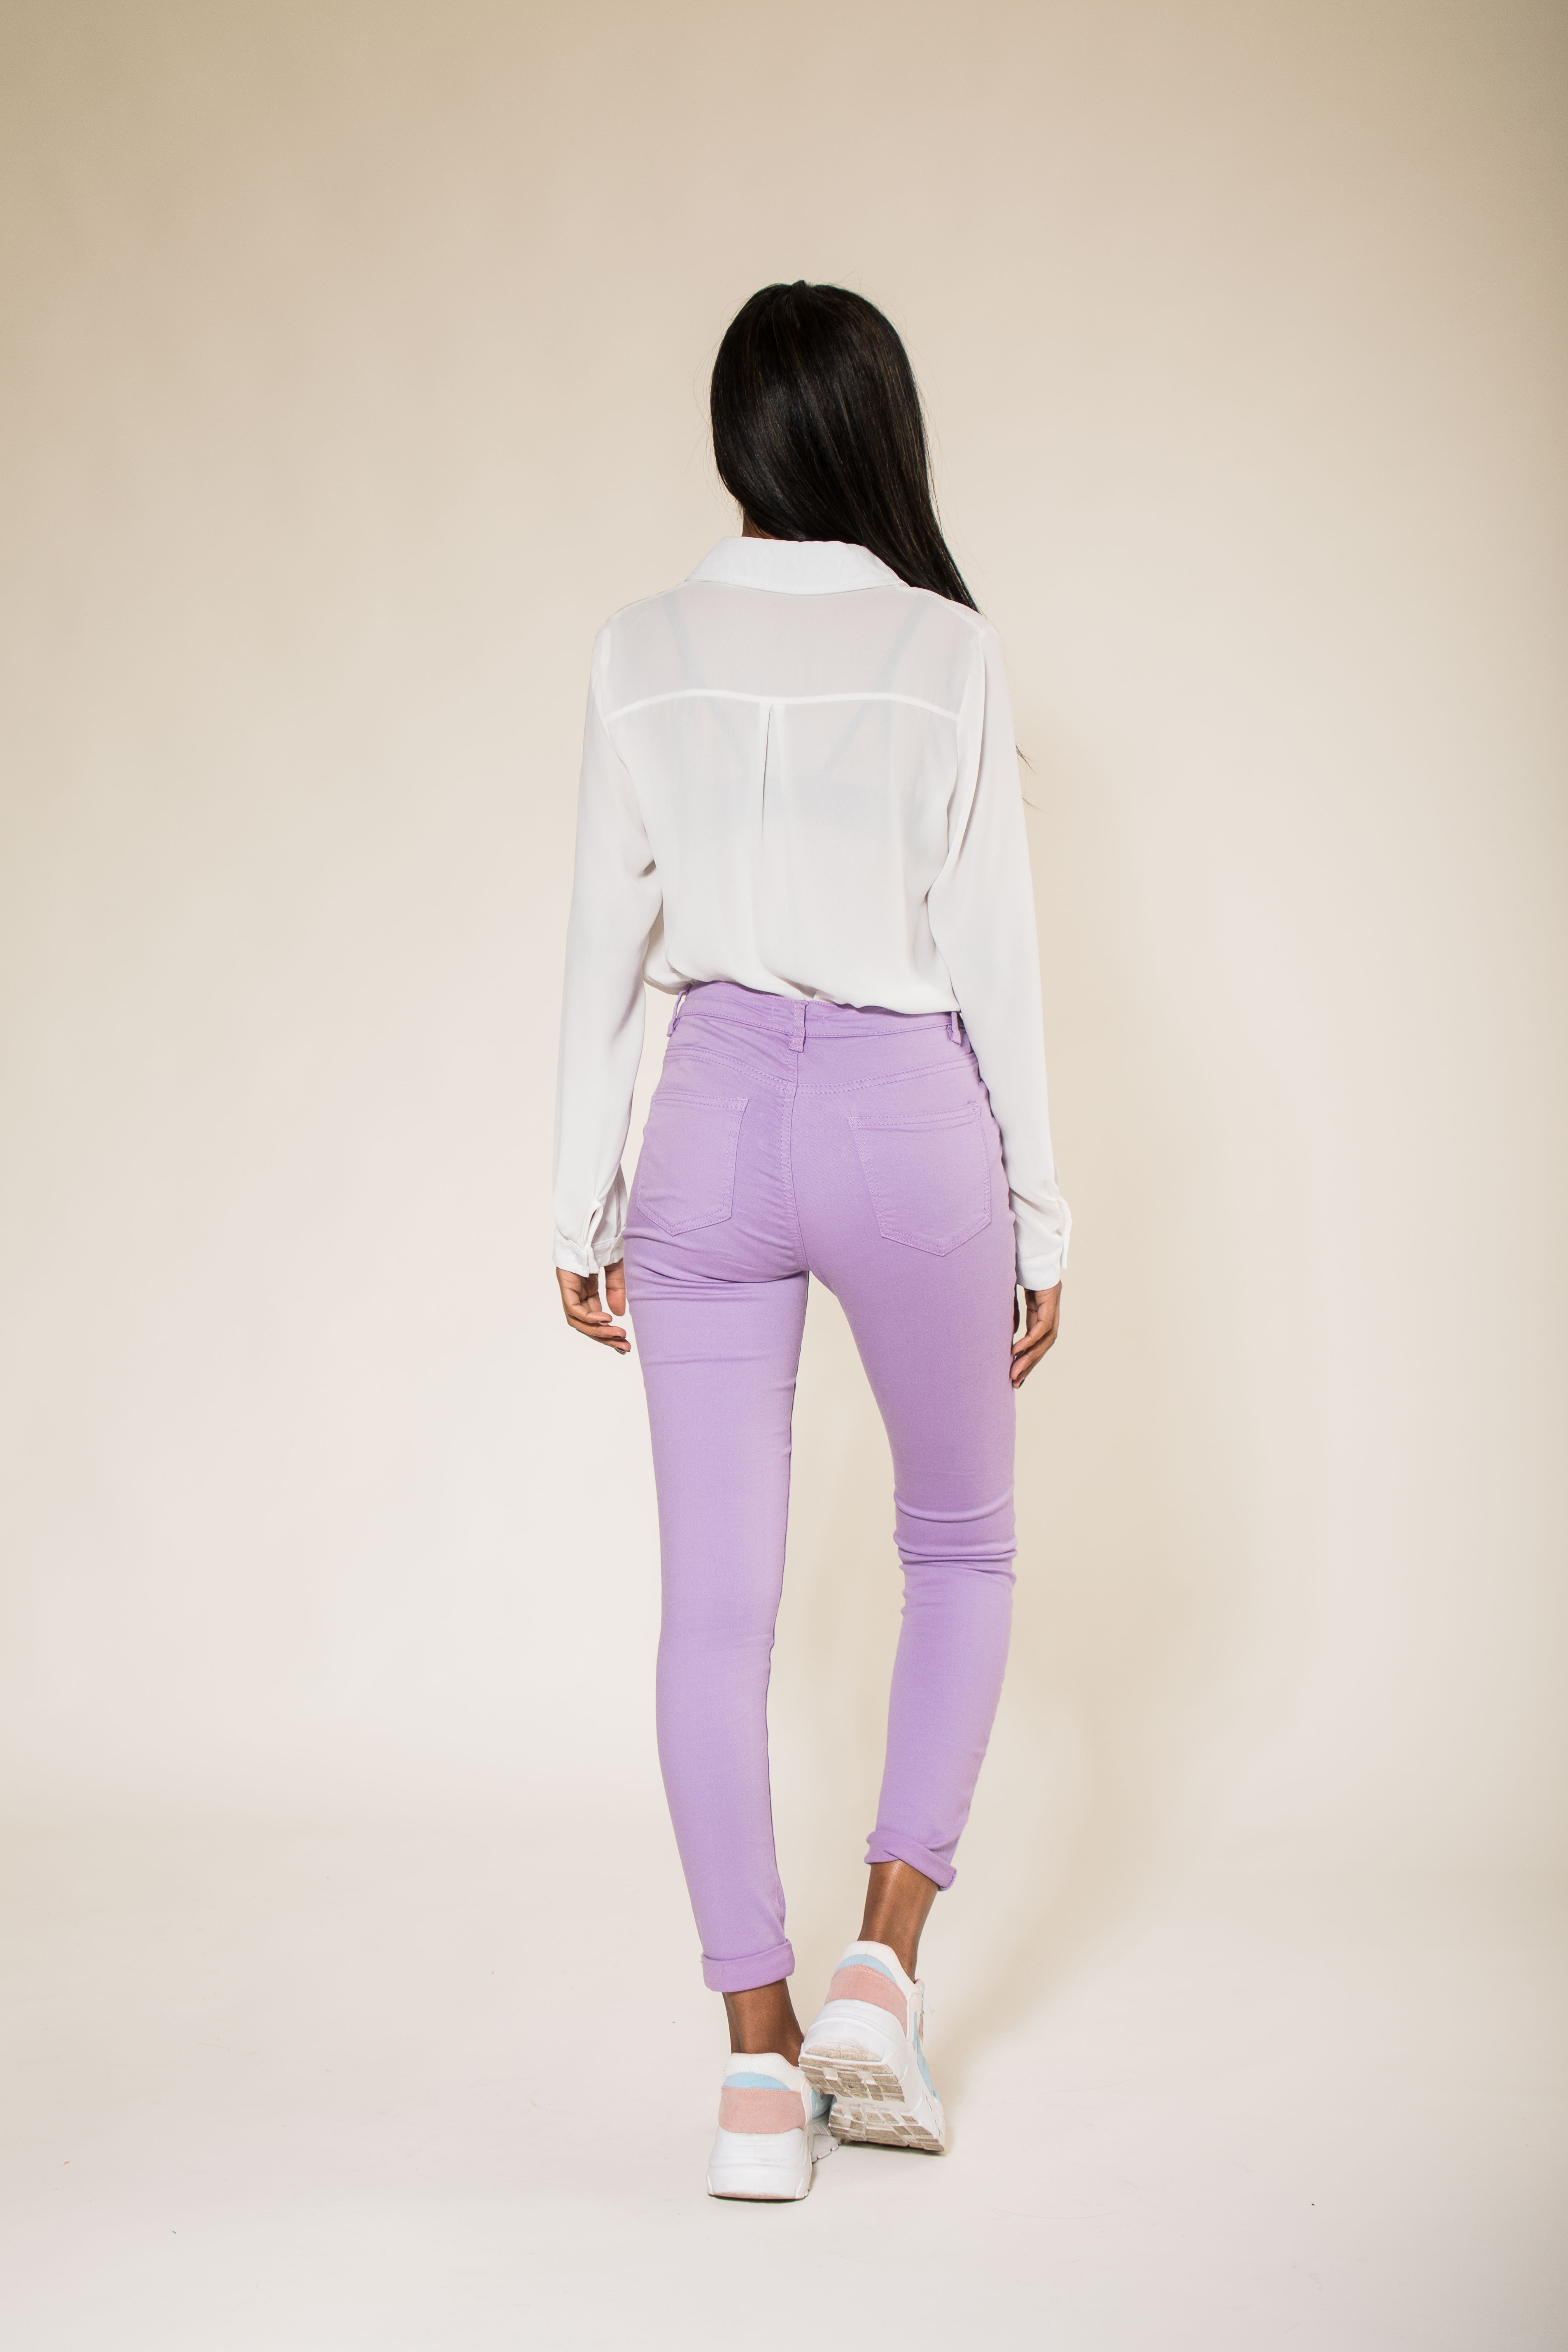 Women-High-Waisted-Jeans-Ladies-Coloured-Stretchy-jeggings-Pants-Size-6-14 thumbnail 32